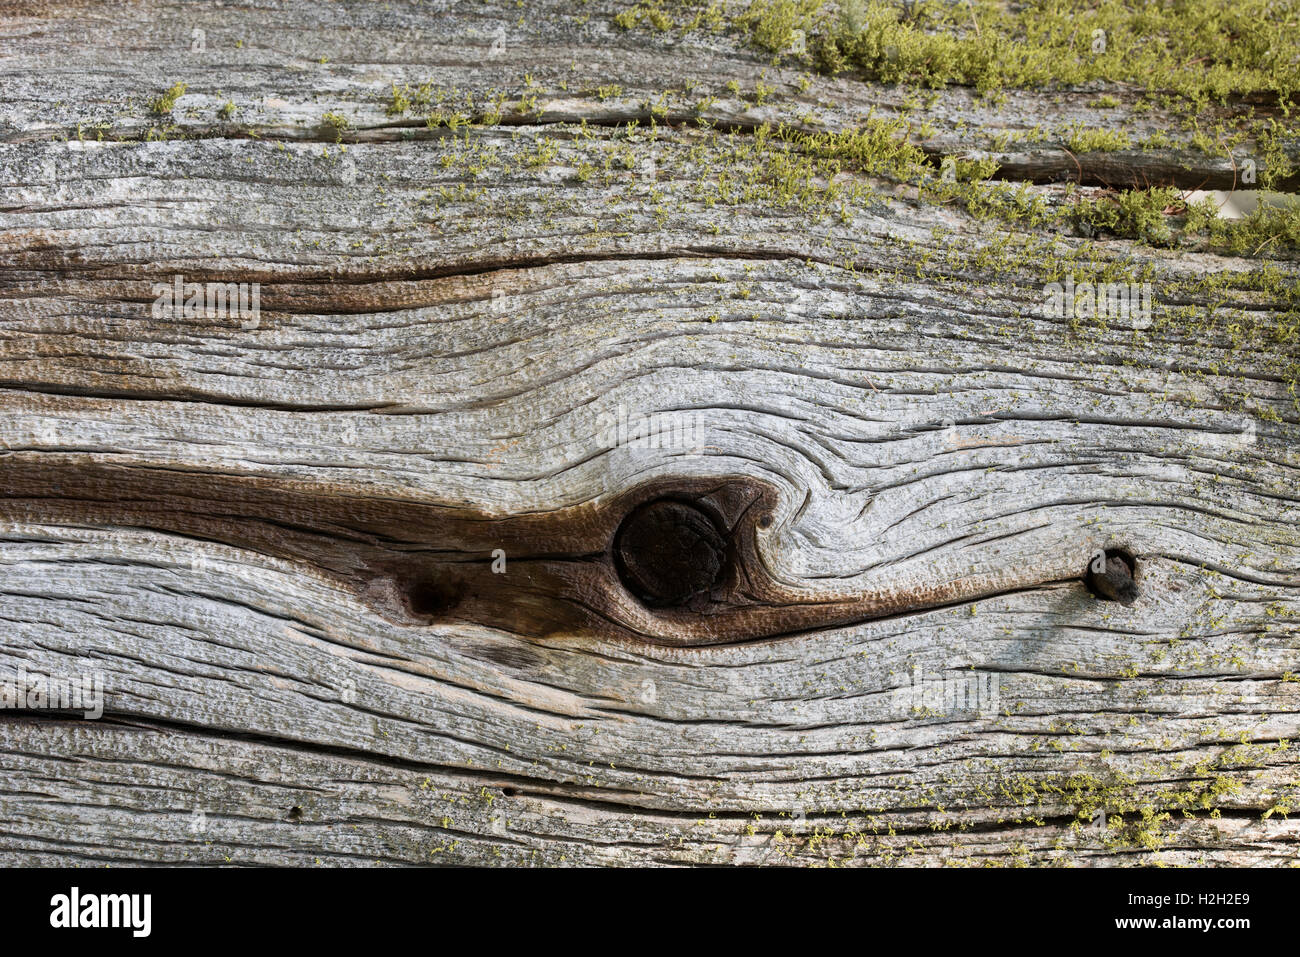 Holz, Detail | wood, detail - Stock Image